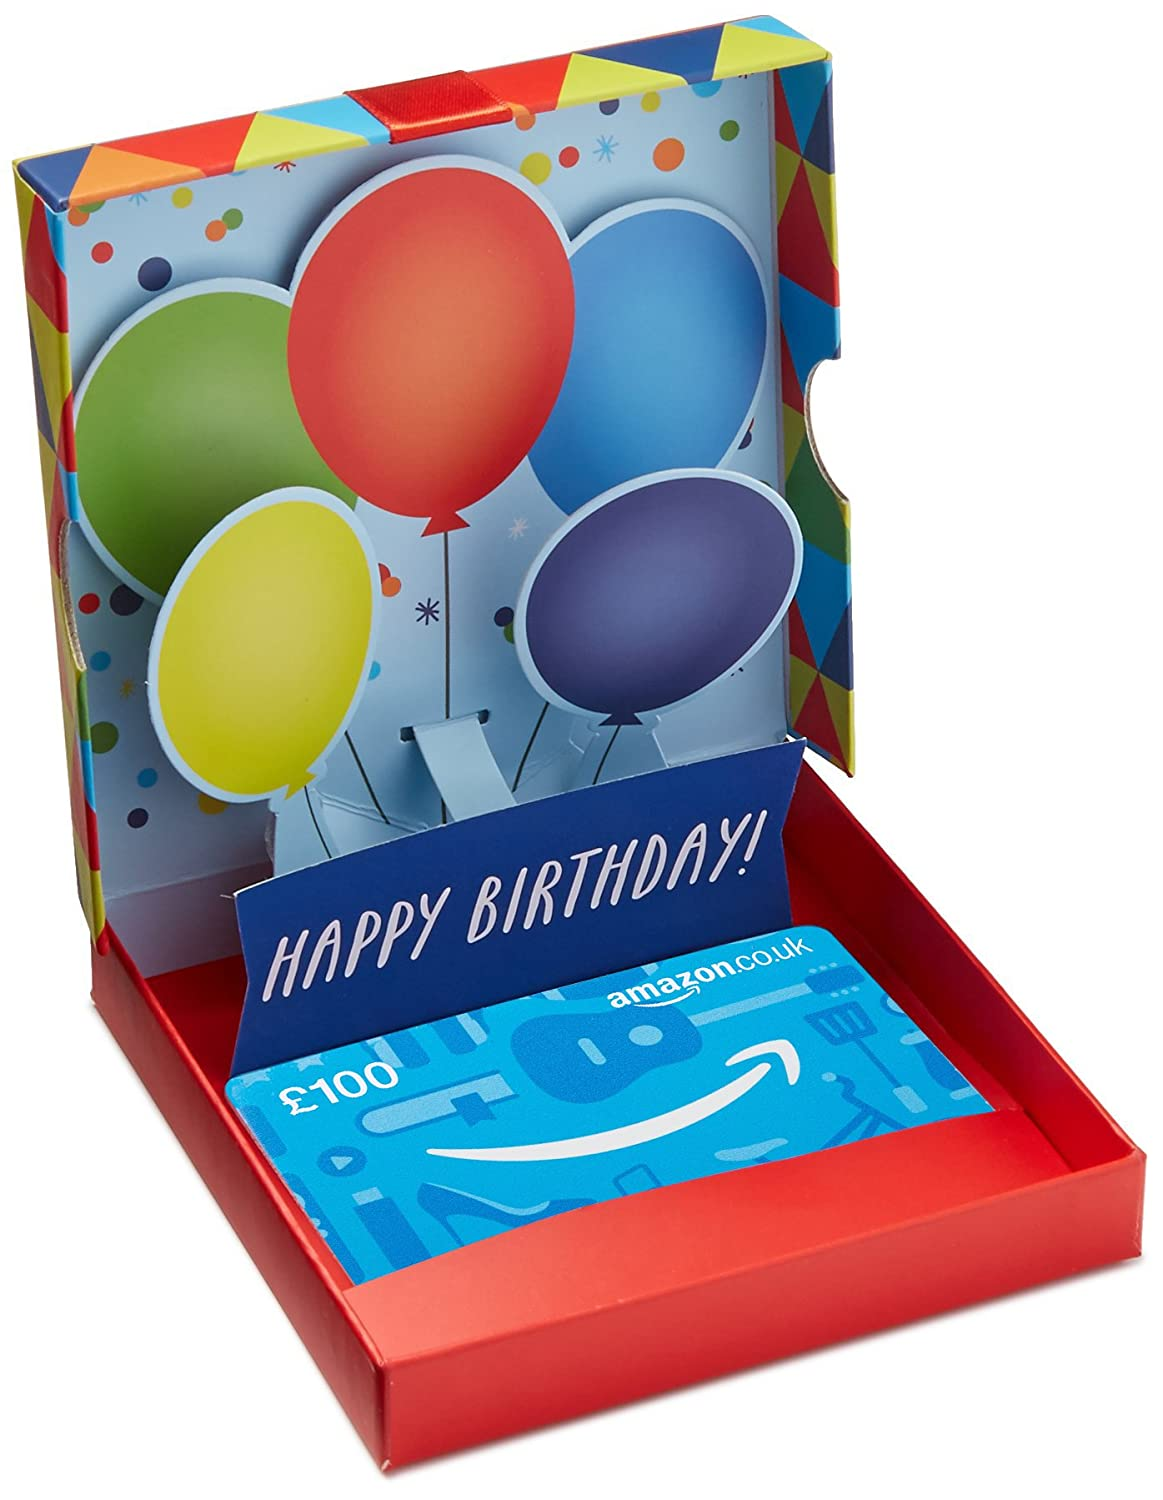 Amazon.co.uk Gift Card In a Gift Box (Birthday Pop-Up) Amazon EU S.à.r.l. Fixed